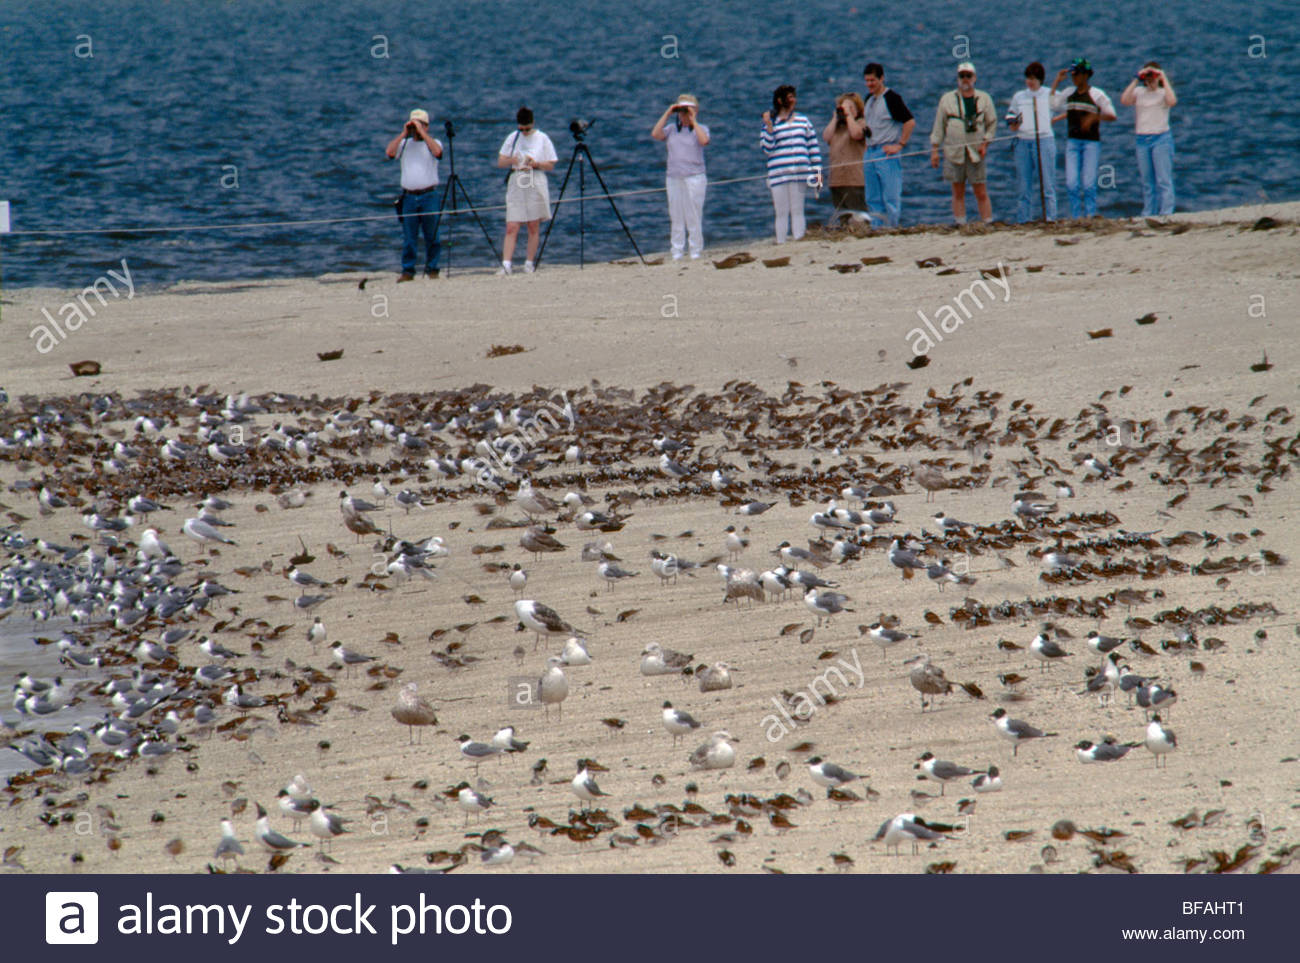 Bird watchers standing back from birds on horseshoe crab spawning beach, Delaware Bay, New Jersey - Stock Image